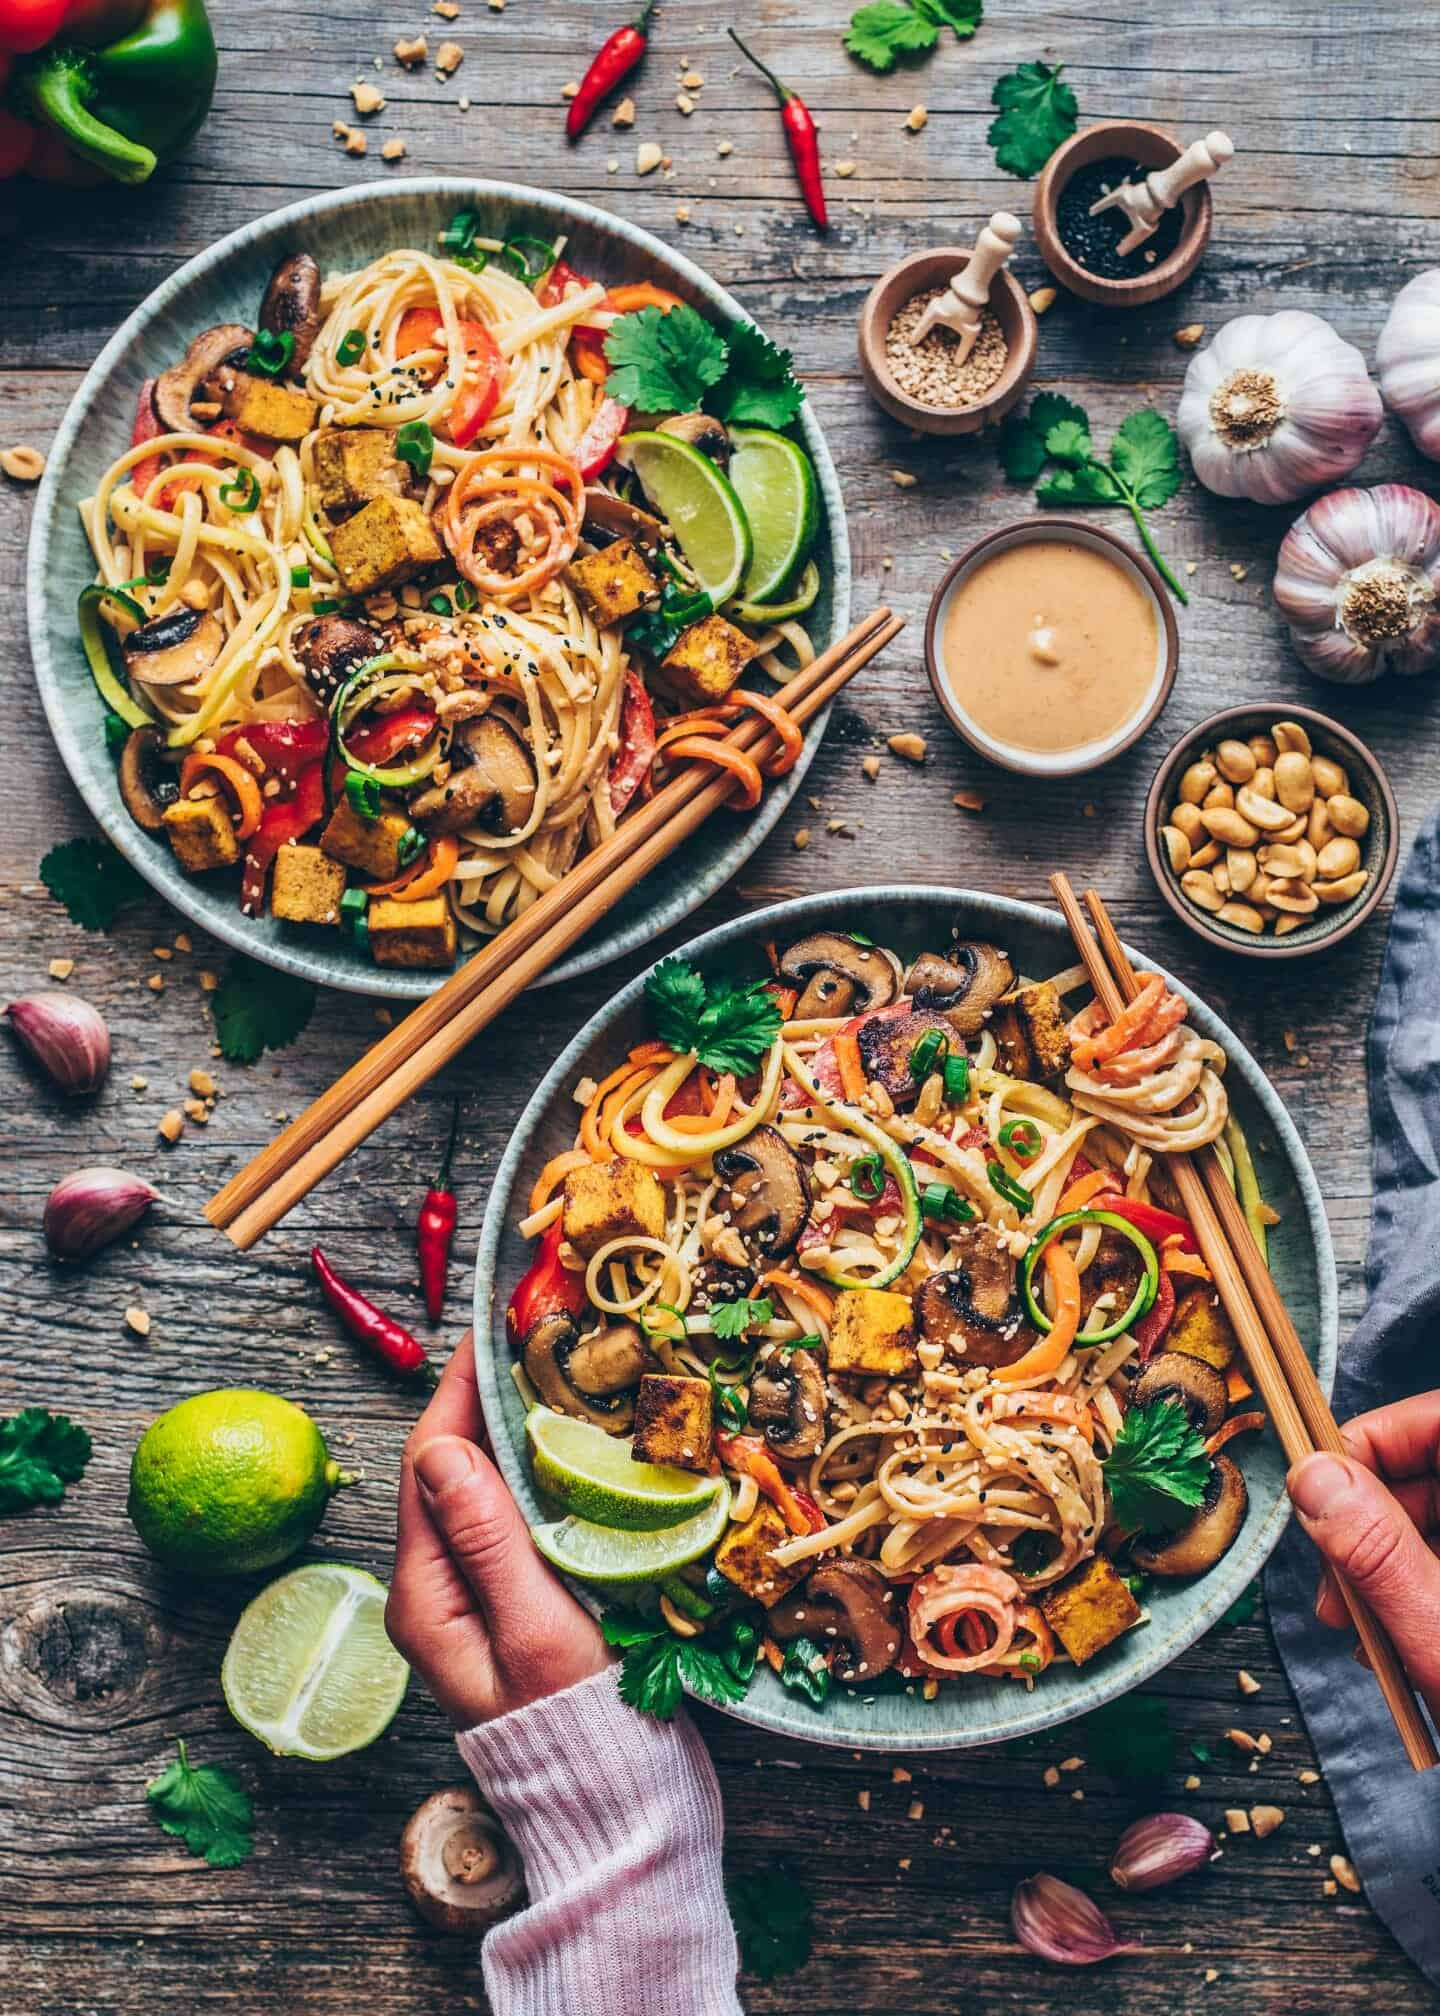 Vegan Pad Thai with crispy tofu, vegetable noodles, creamy peanut sauce. Quick and easy Recipe, healthy, delicious, gluten-free. Carrot noodles, Zucchini Noodles, mushrooms. Asia food, Chinese.